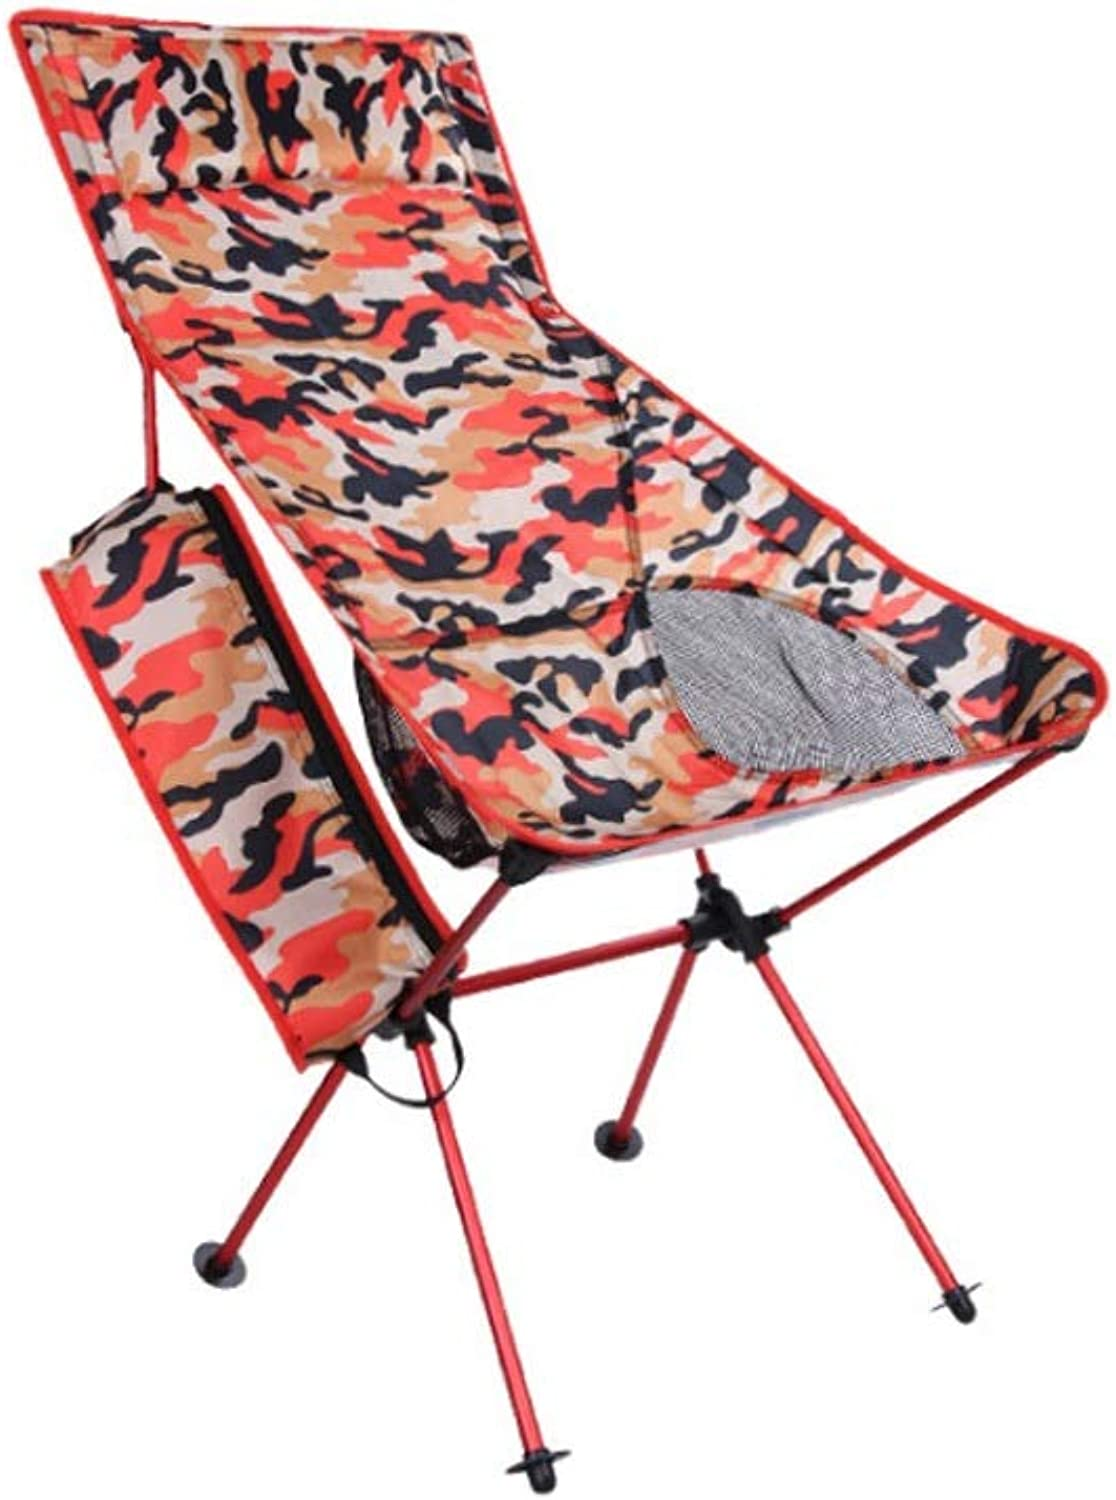 Qiuoorsqurp Folding Storage Multi-Function Mountain Camping Leisure Chair Suitable for All Kinds of Outdoor Application Travel, Easy to wash and Dry, Waterproof and Breathable (color   orange)